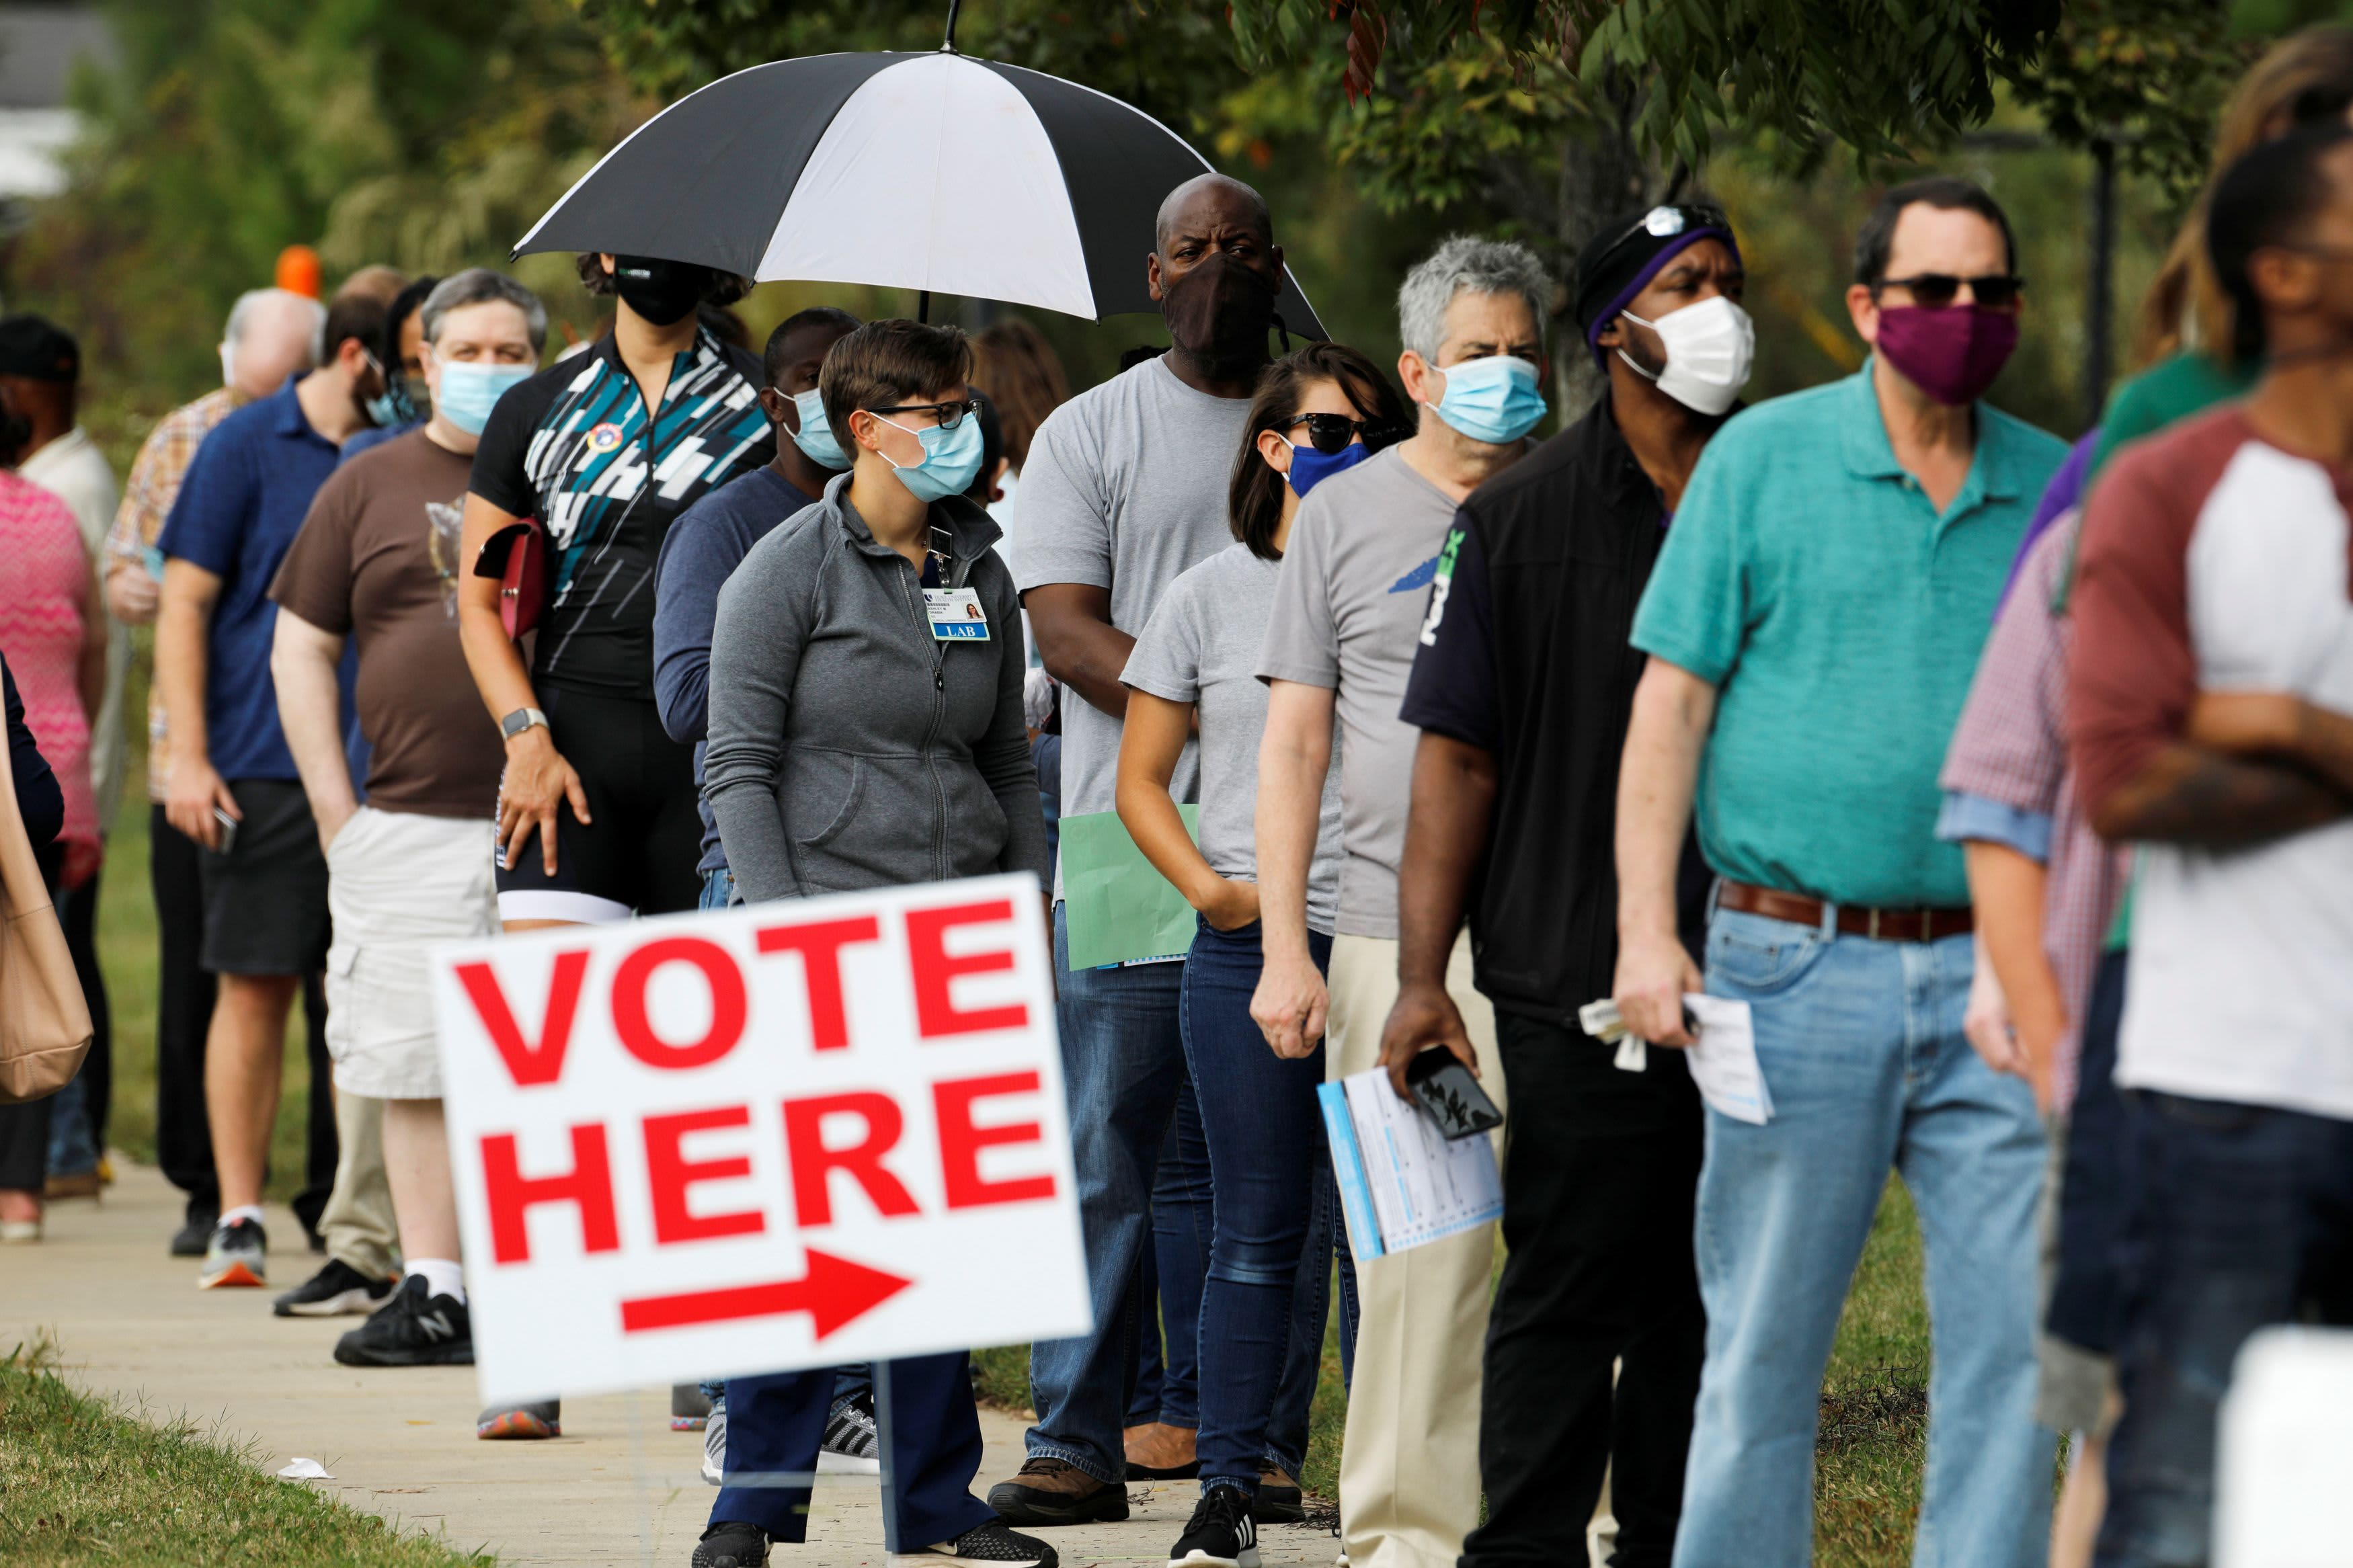 More than 35 million Americans have voted with two weeks until Election Day